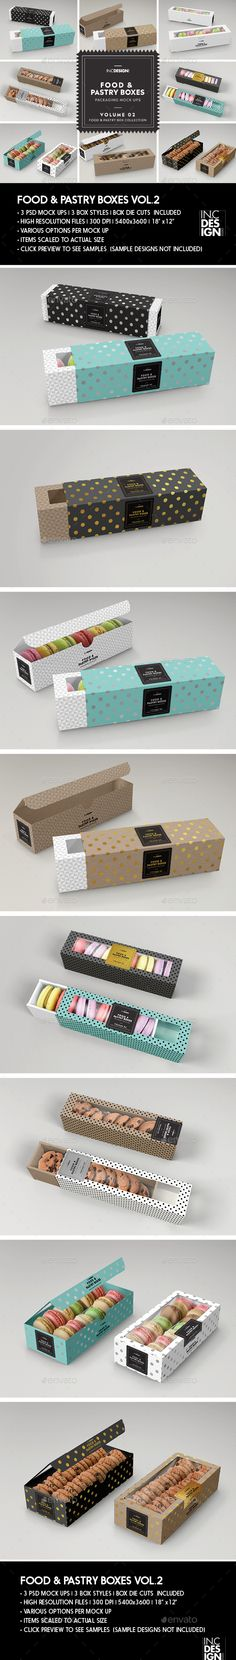 Food Pastry Boxes Vol.2: Cookies | Macarons | Pastry Take Out Packaging Mock Ups - Food and Drink Packaging